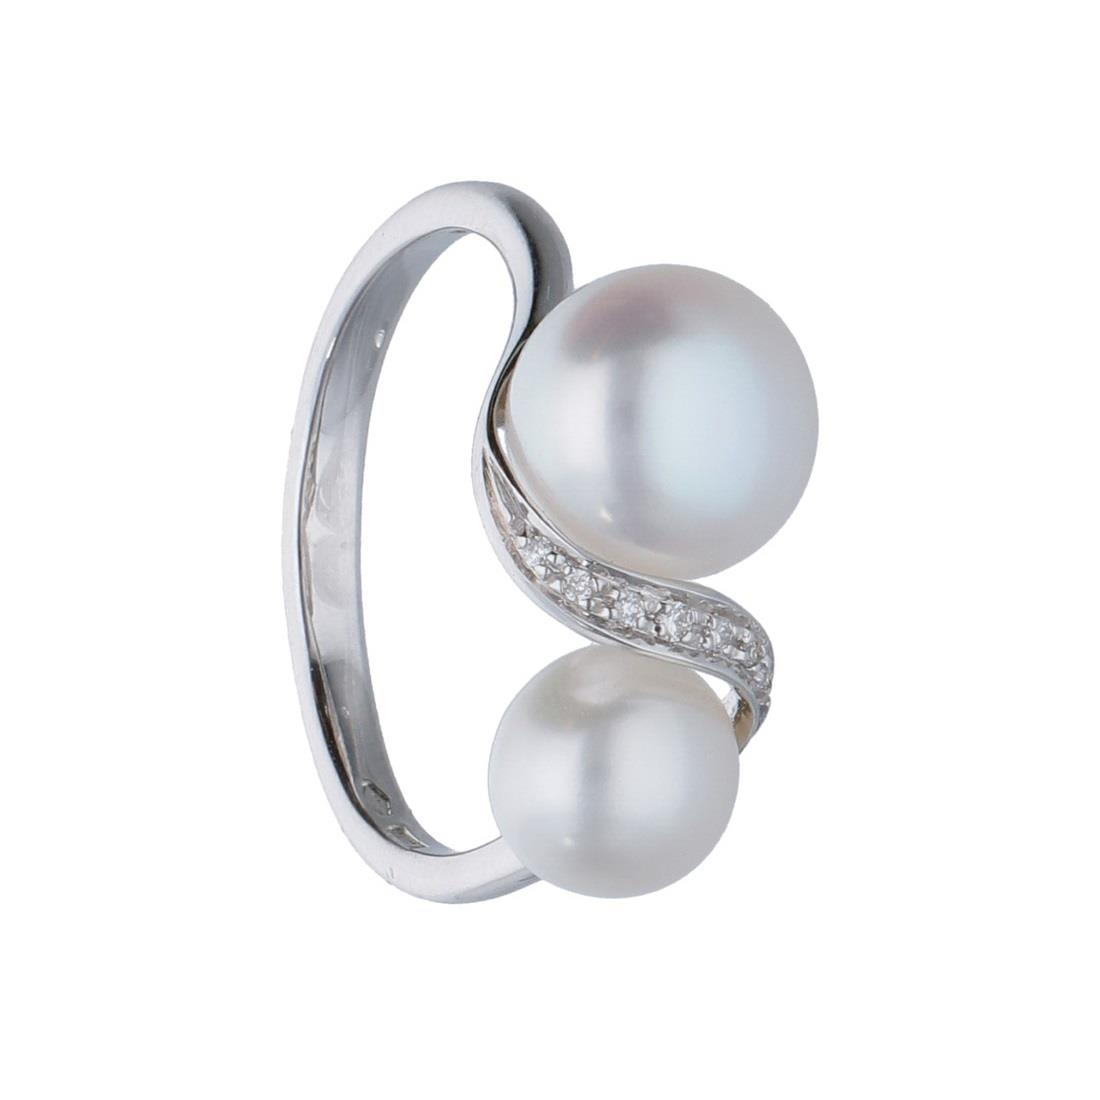 Anello con diamanti e perle  - BLISS